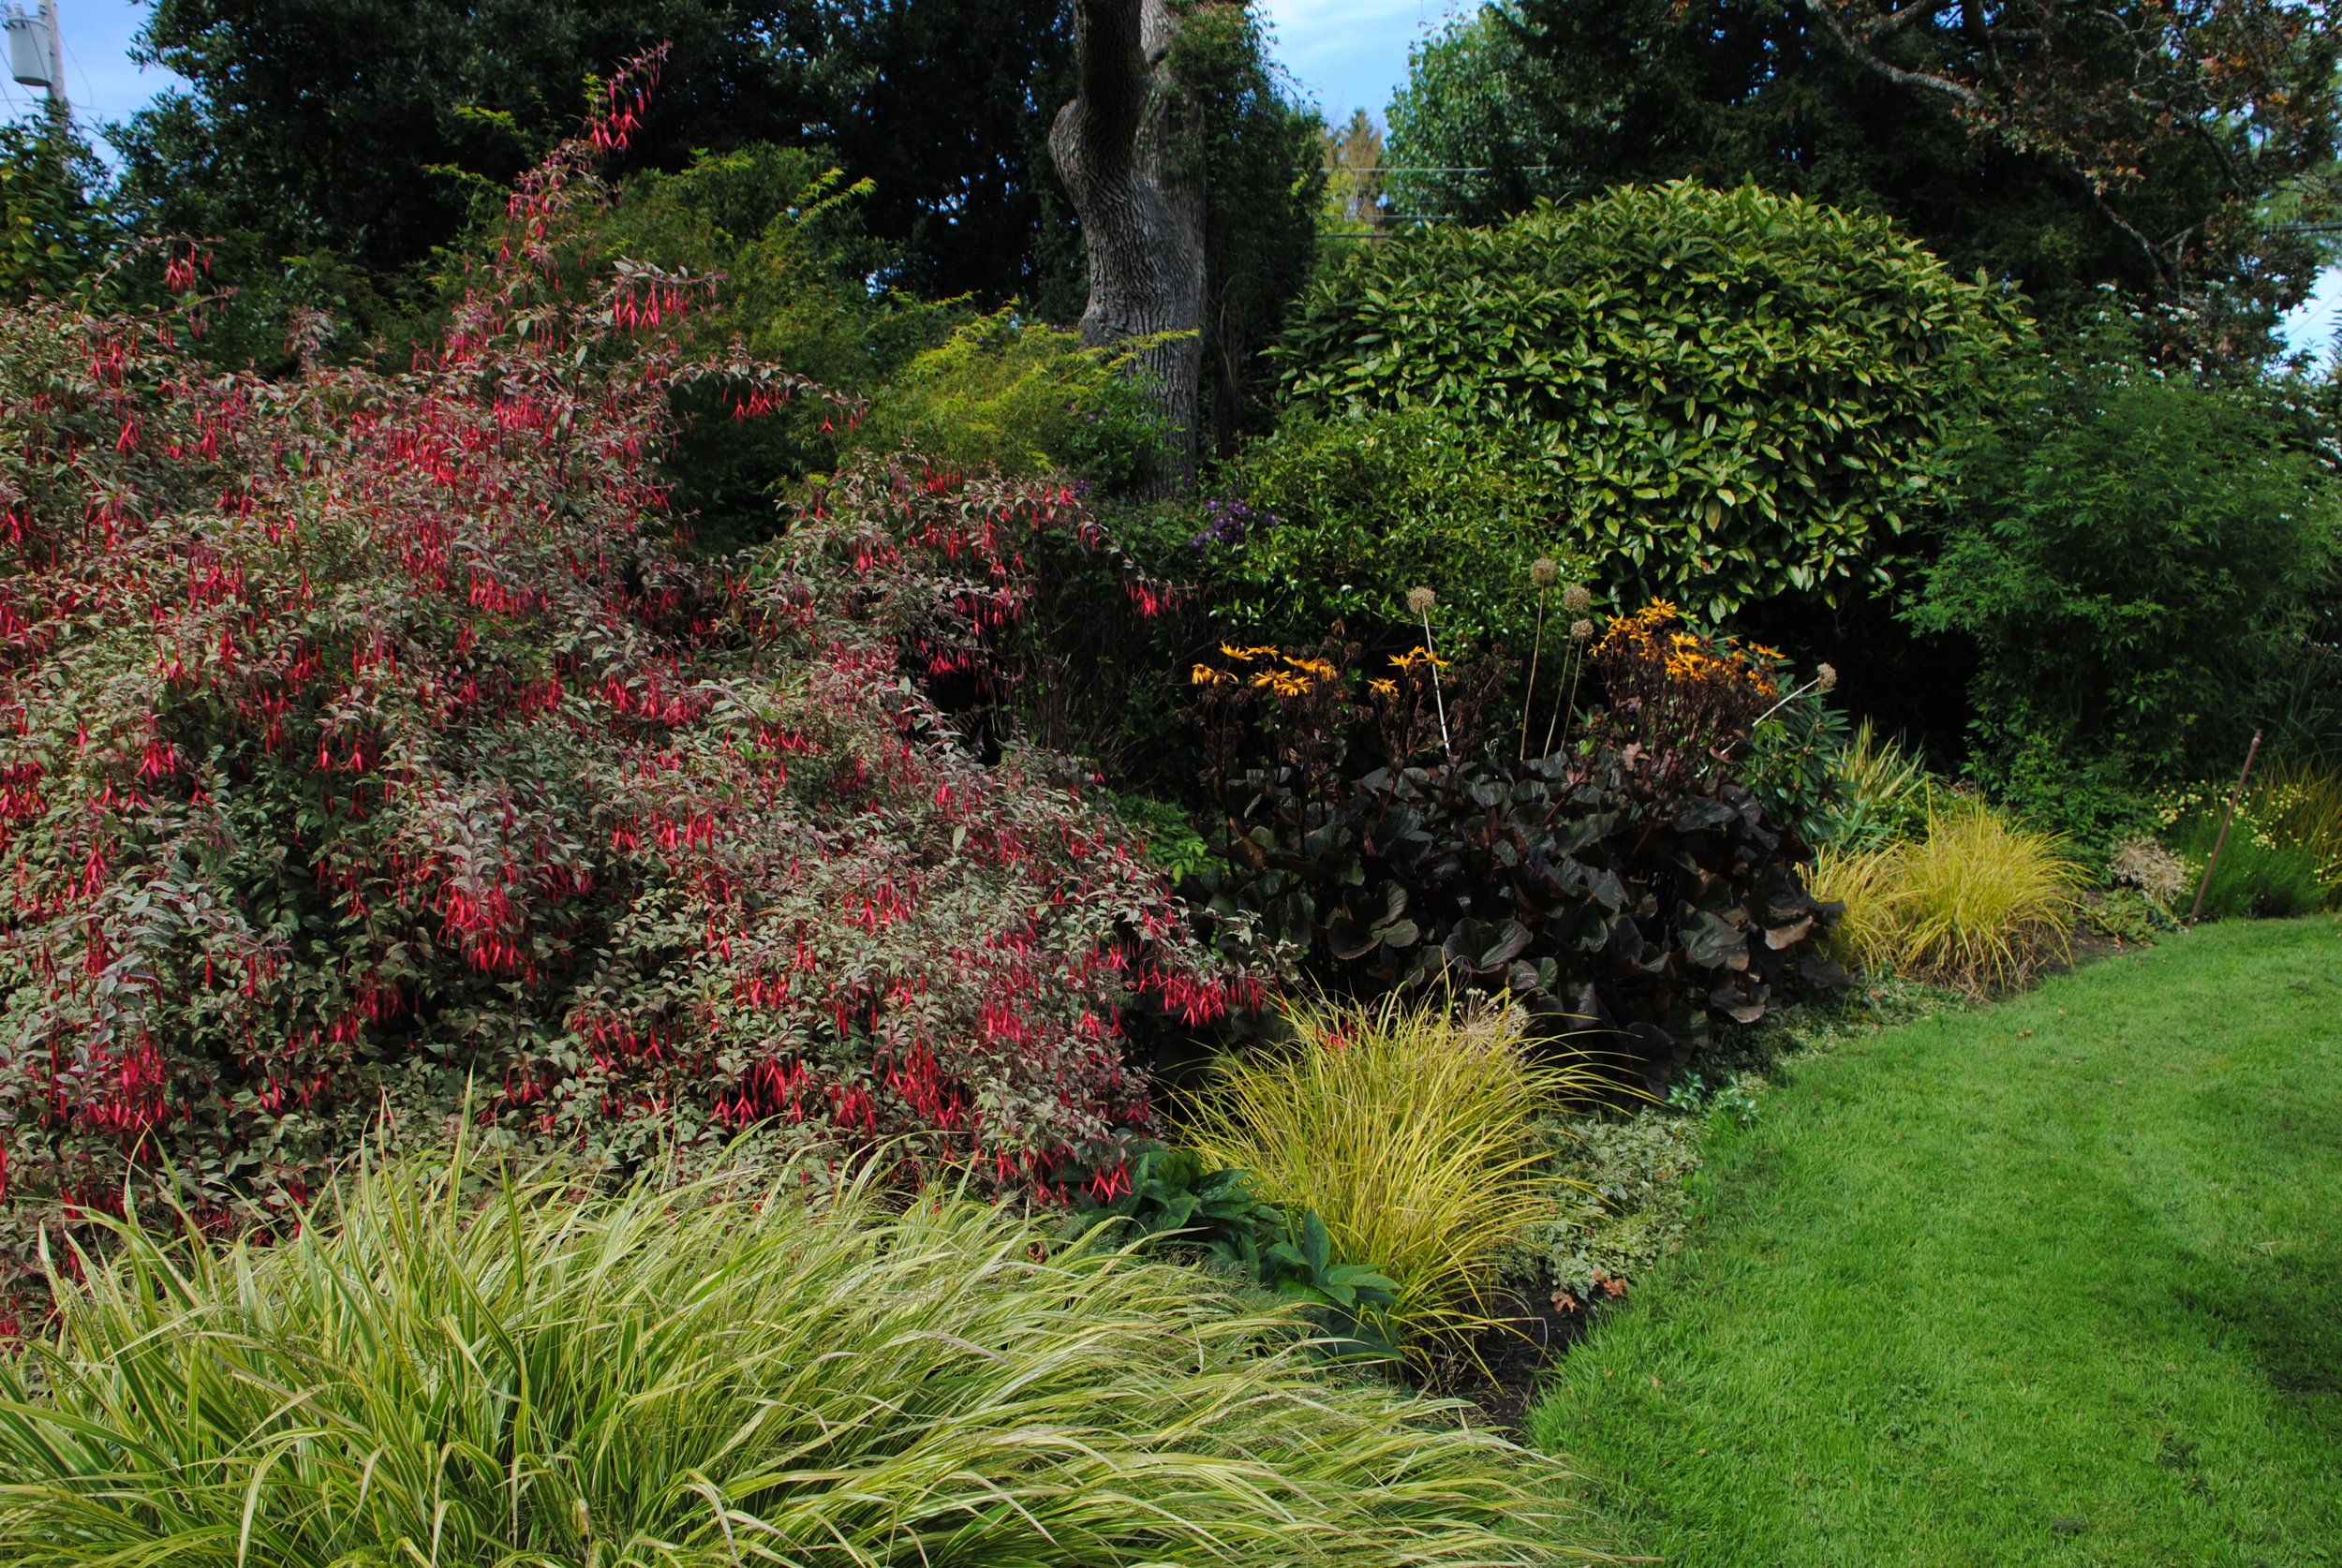 One of the lovely borders at Government House.